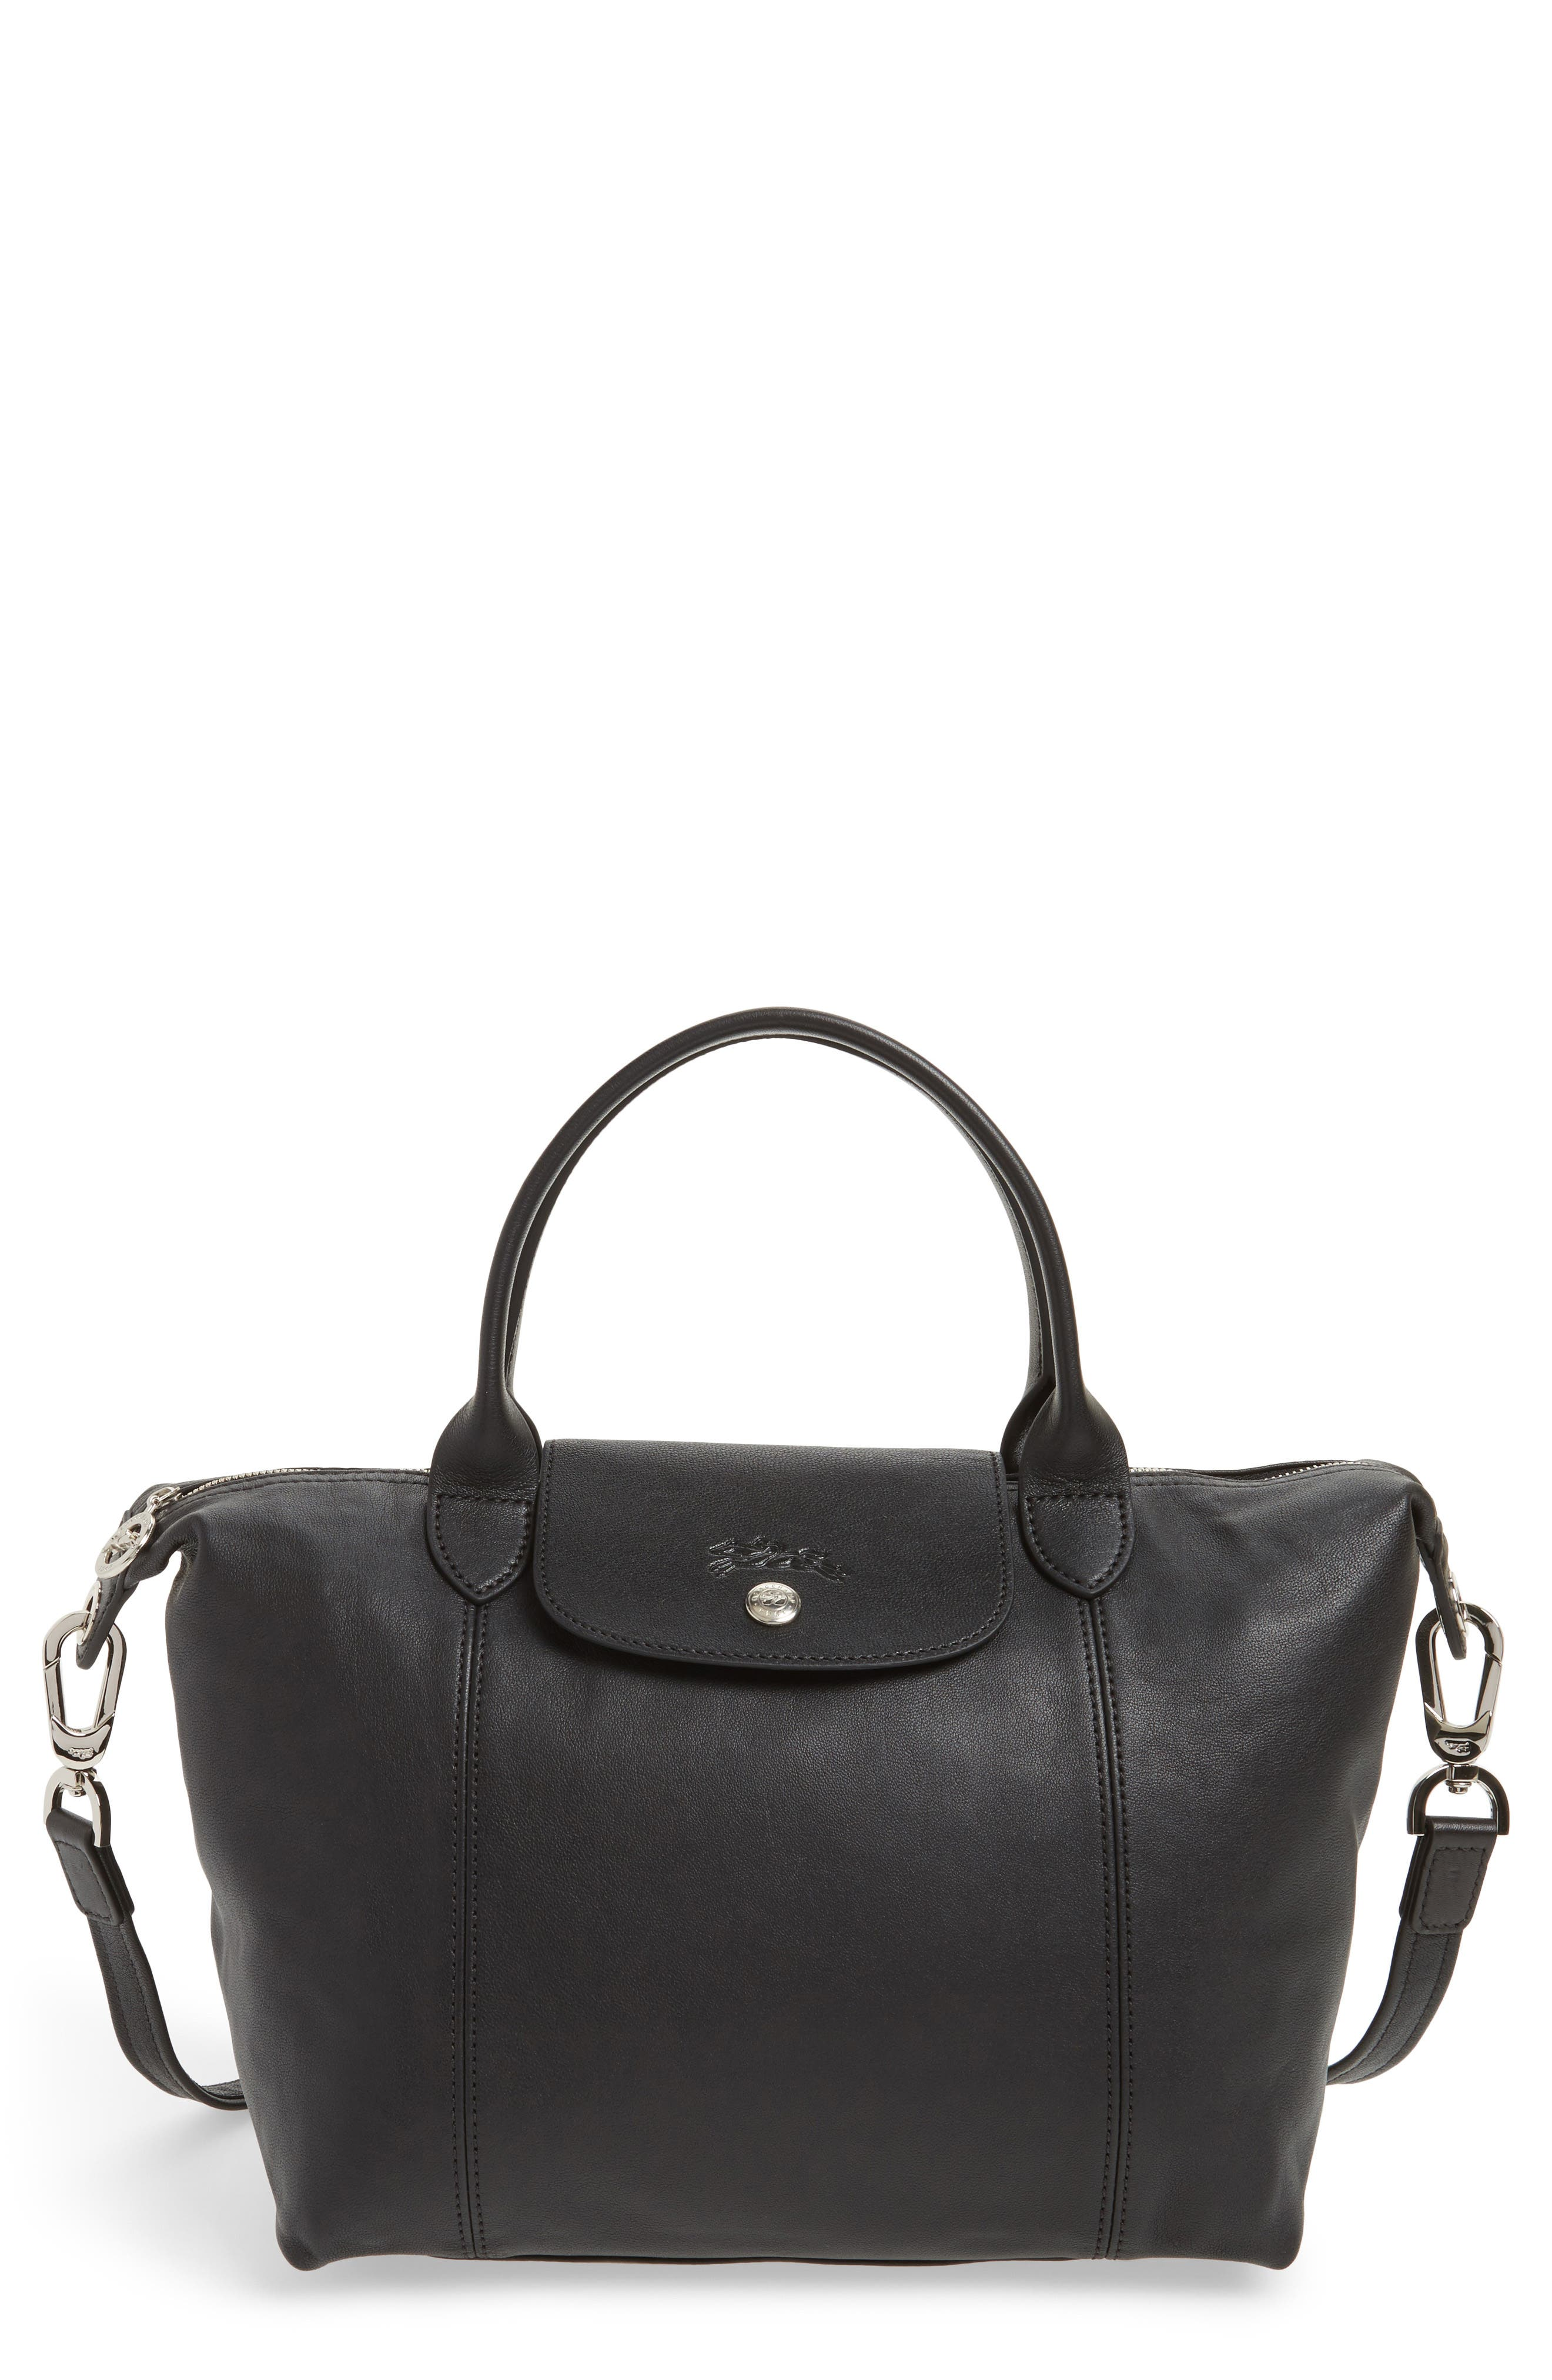 Longchamp 'Le Pliage Cuir' Leather Handbag